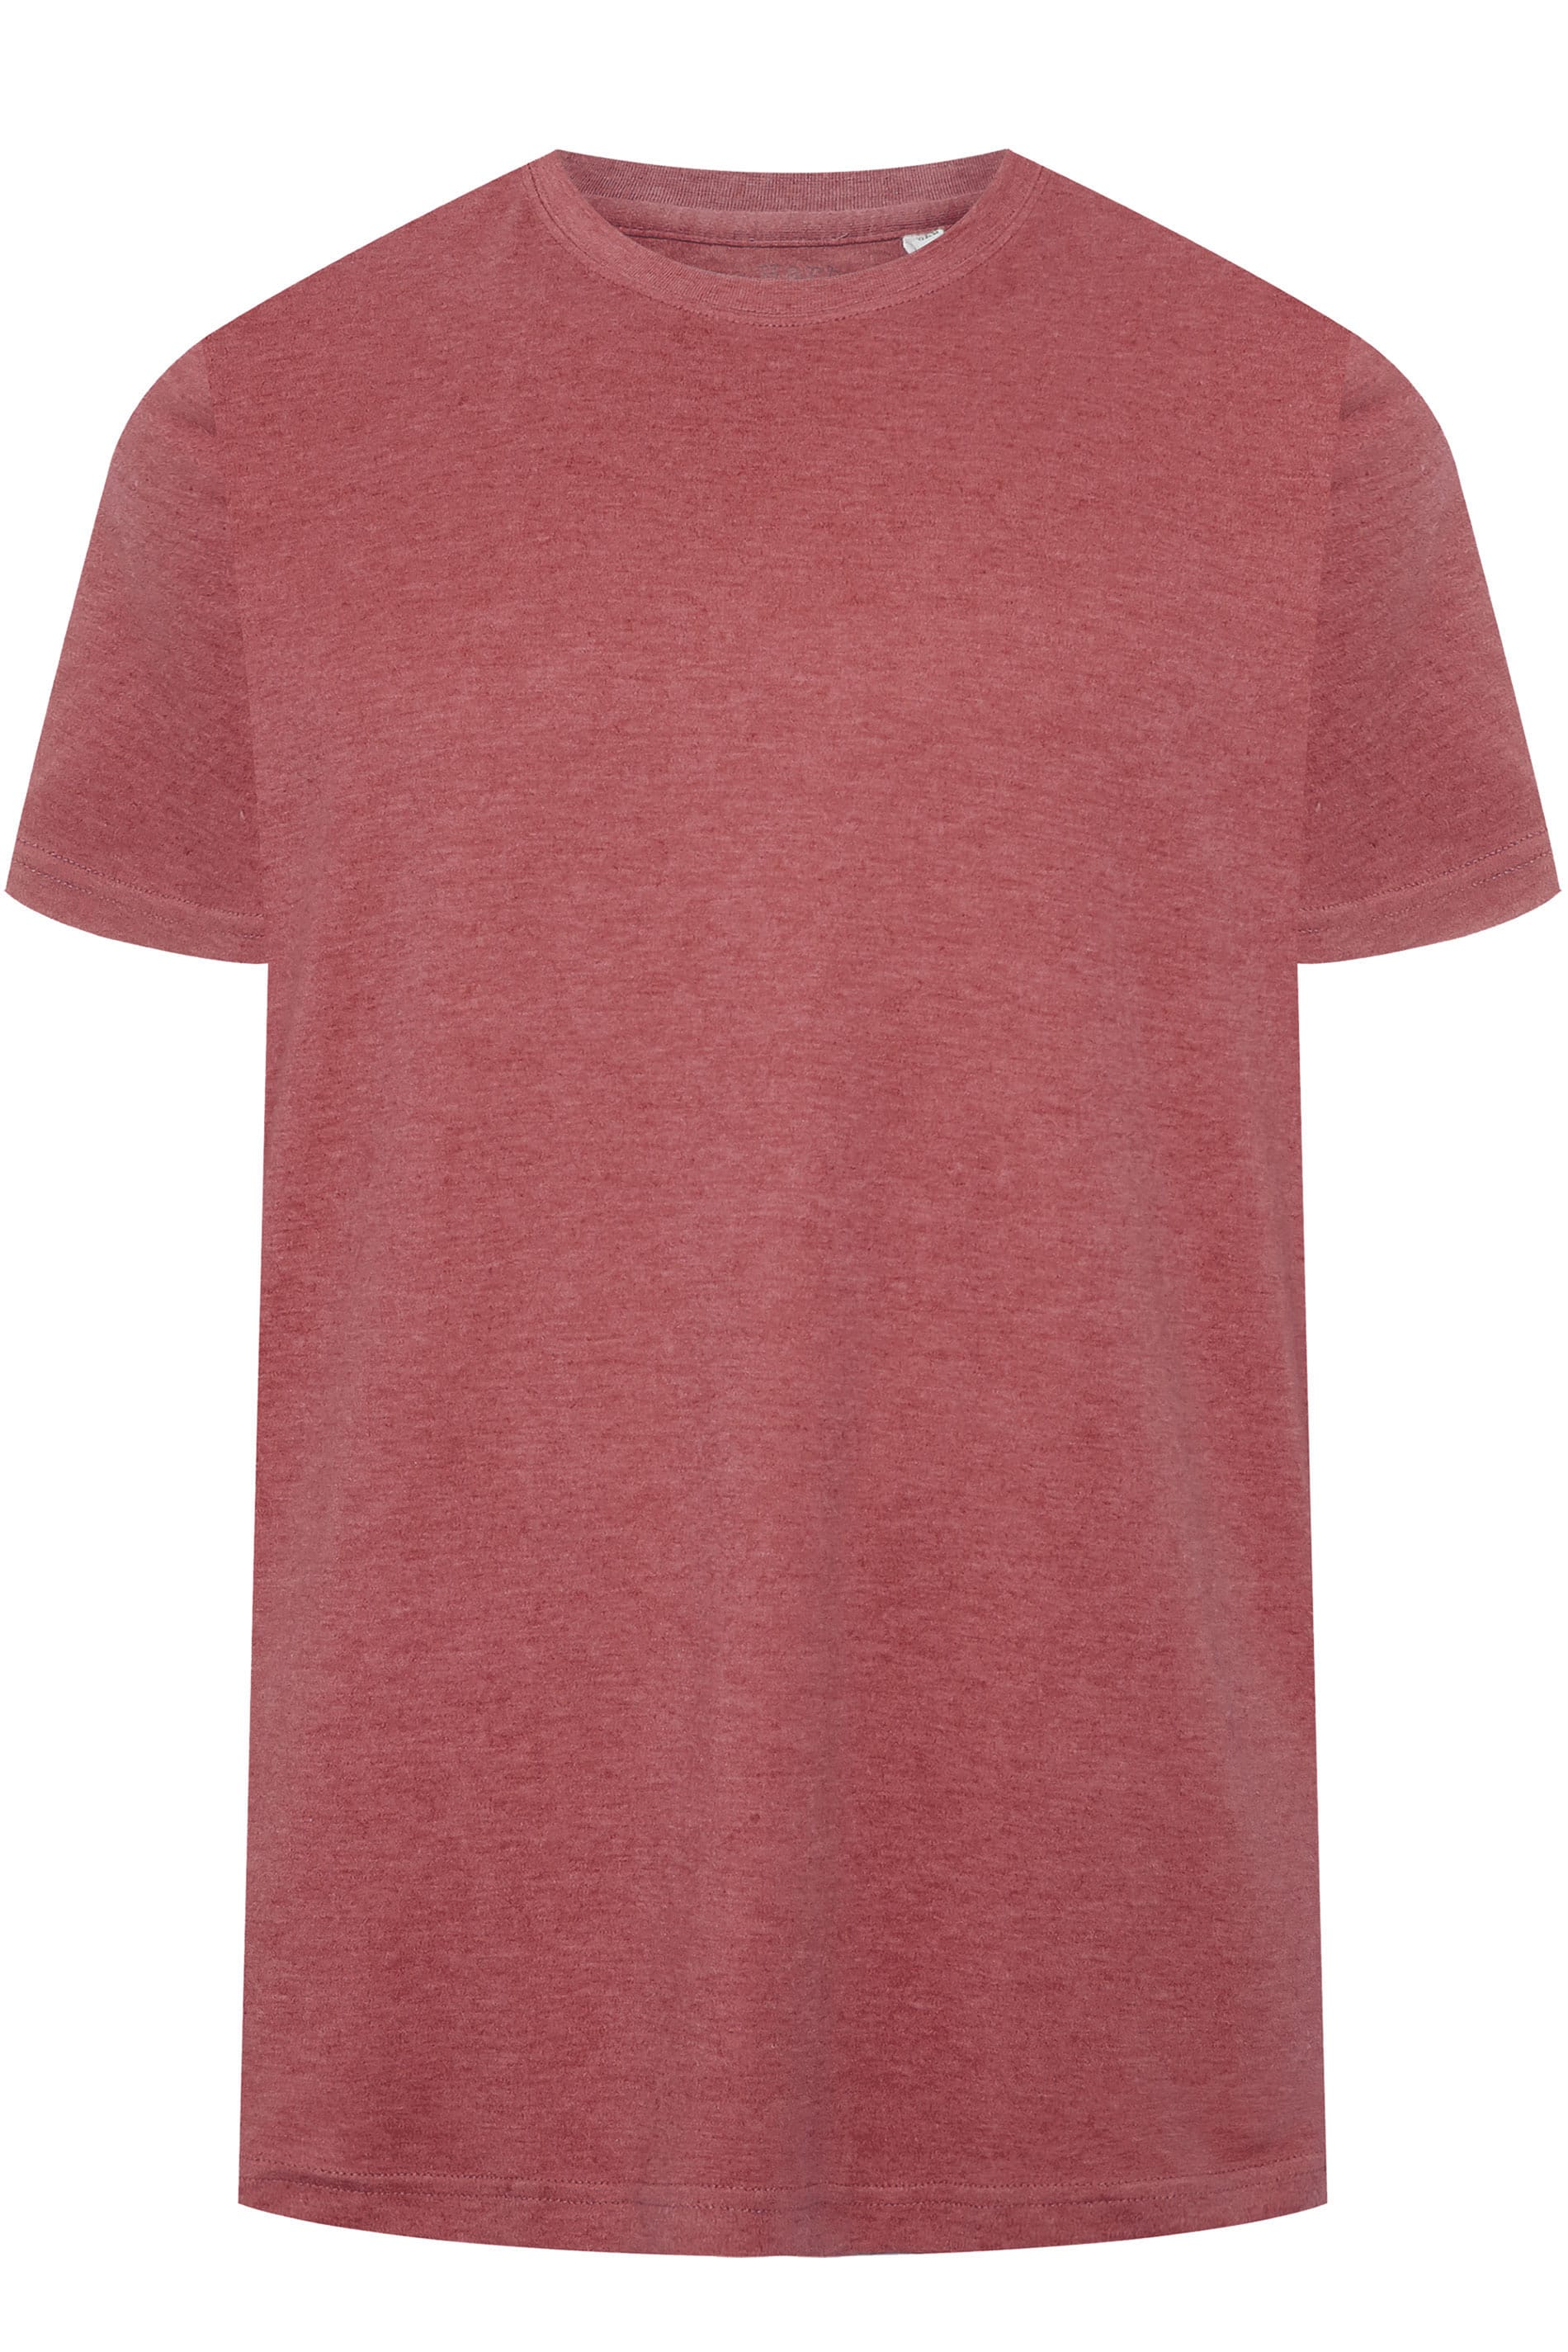 BAR HARBOUR Red Marl Plain Crew Neck T-Shirt